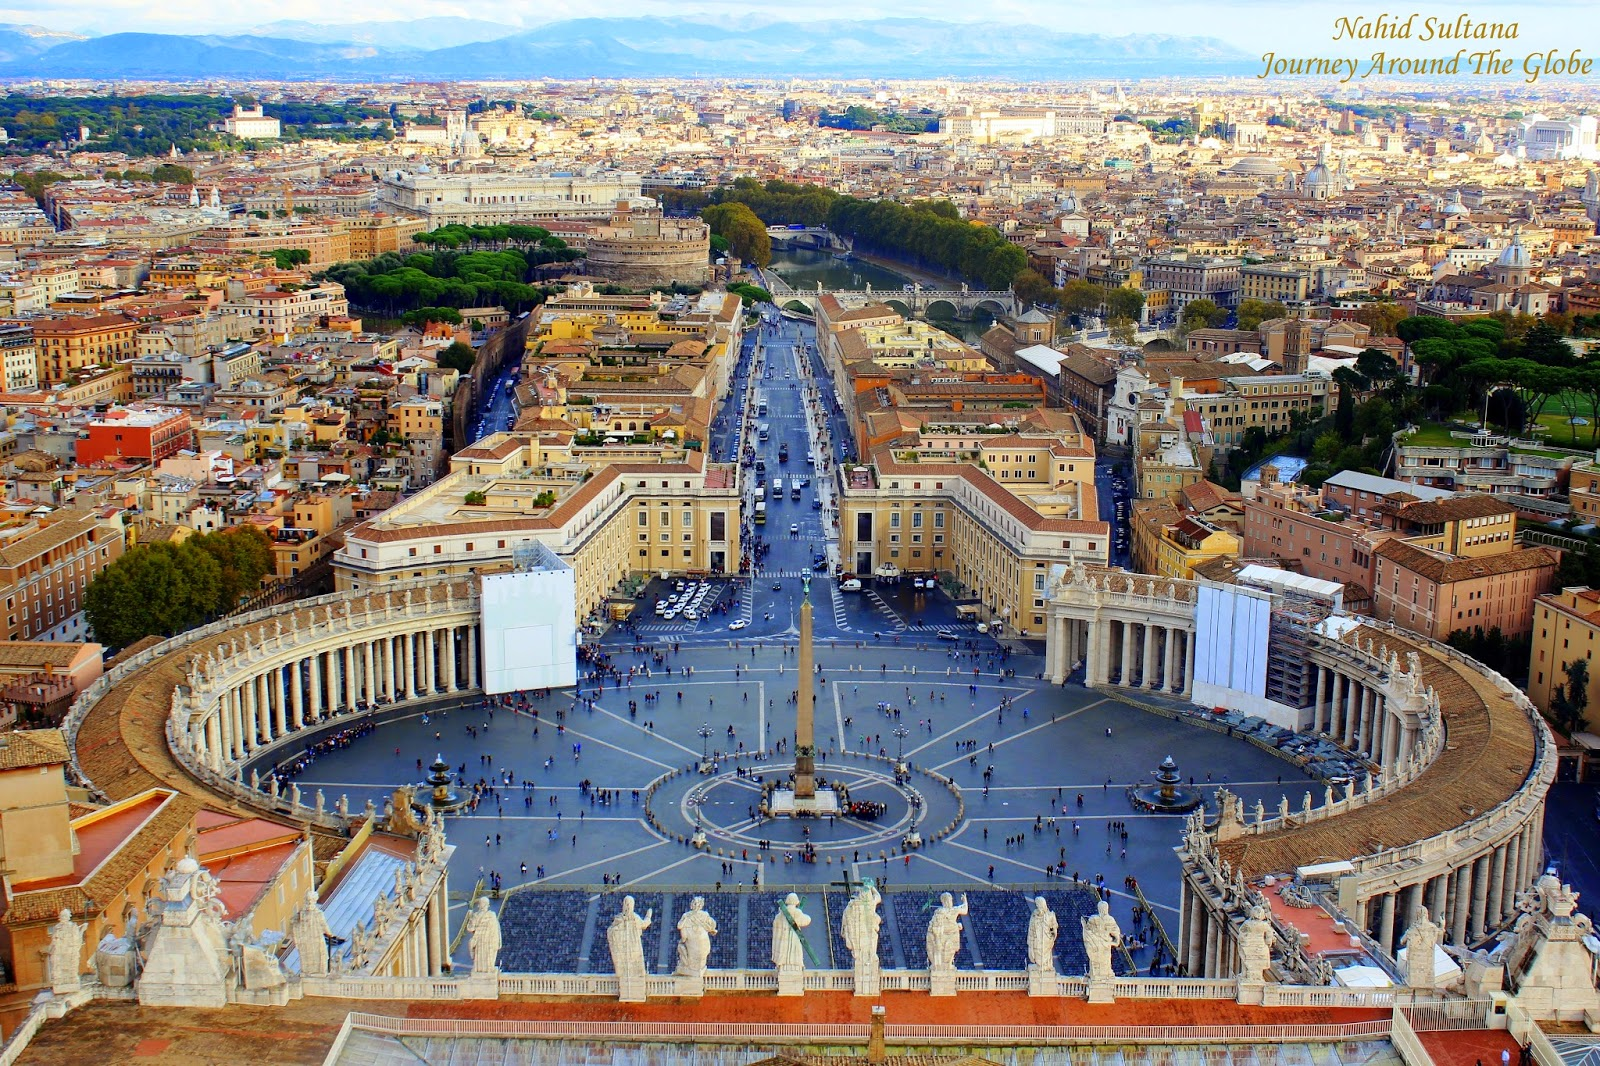 Vatican - View from copula of St. Peter's Basilica